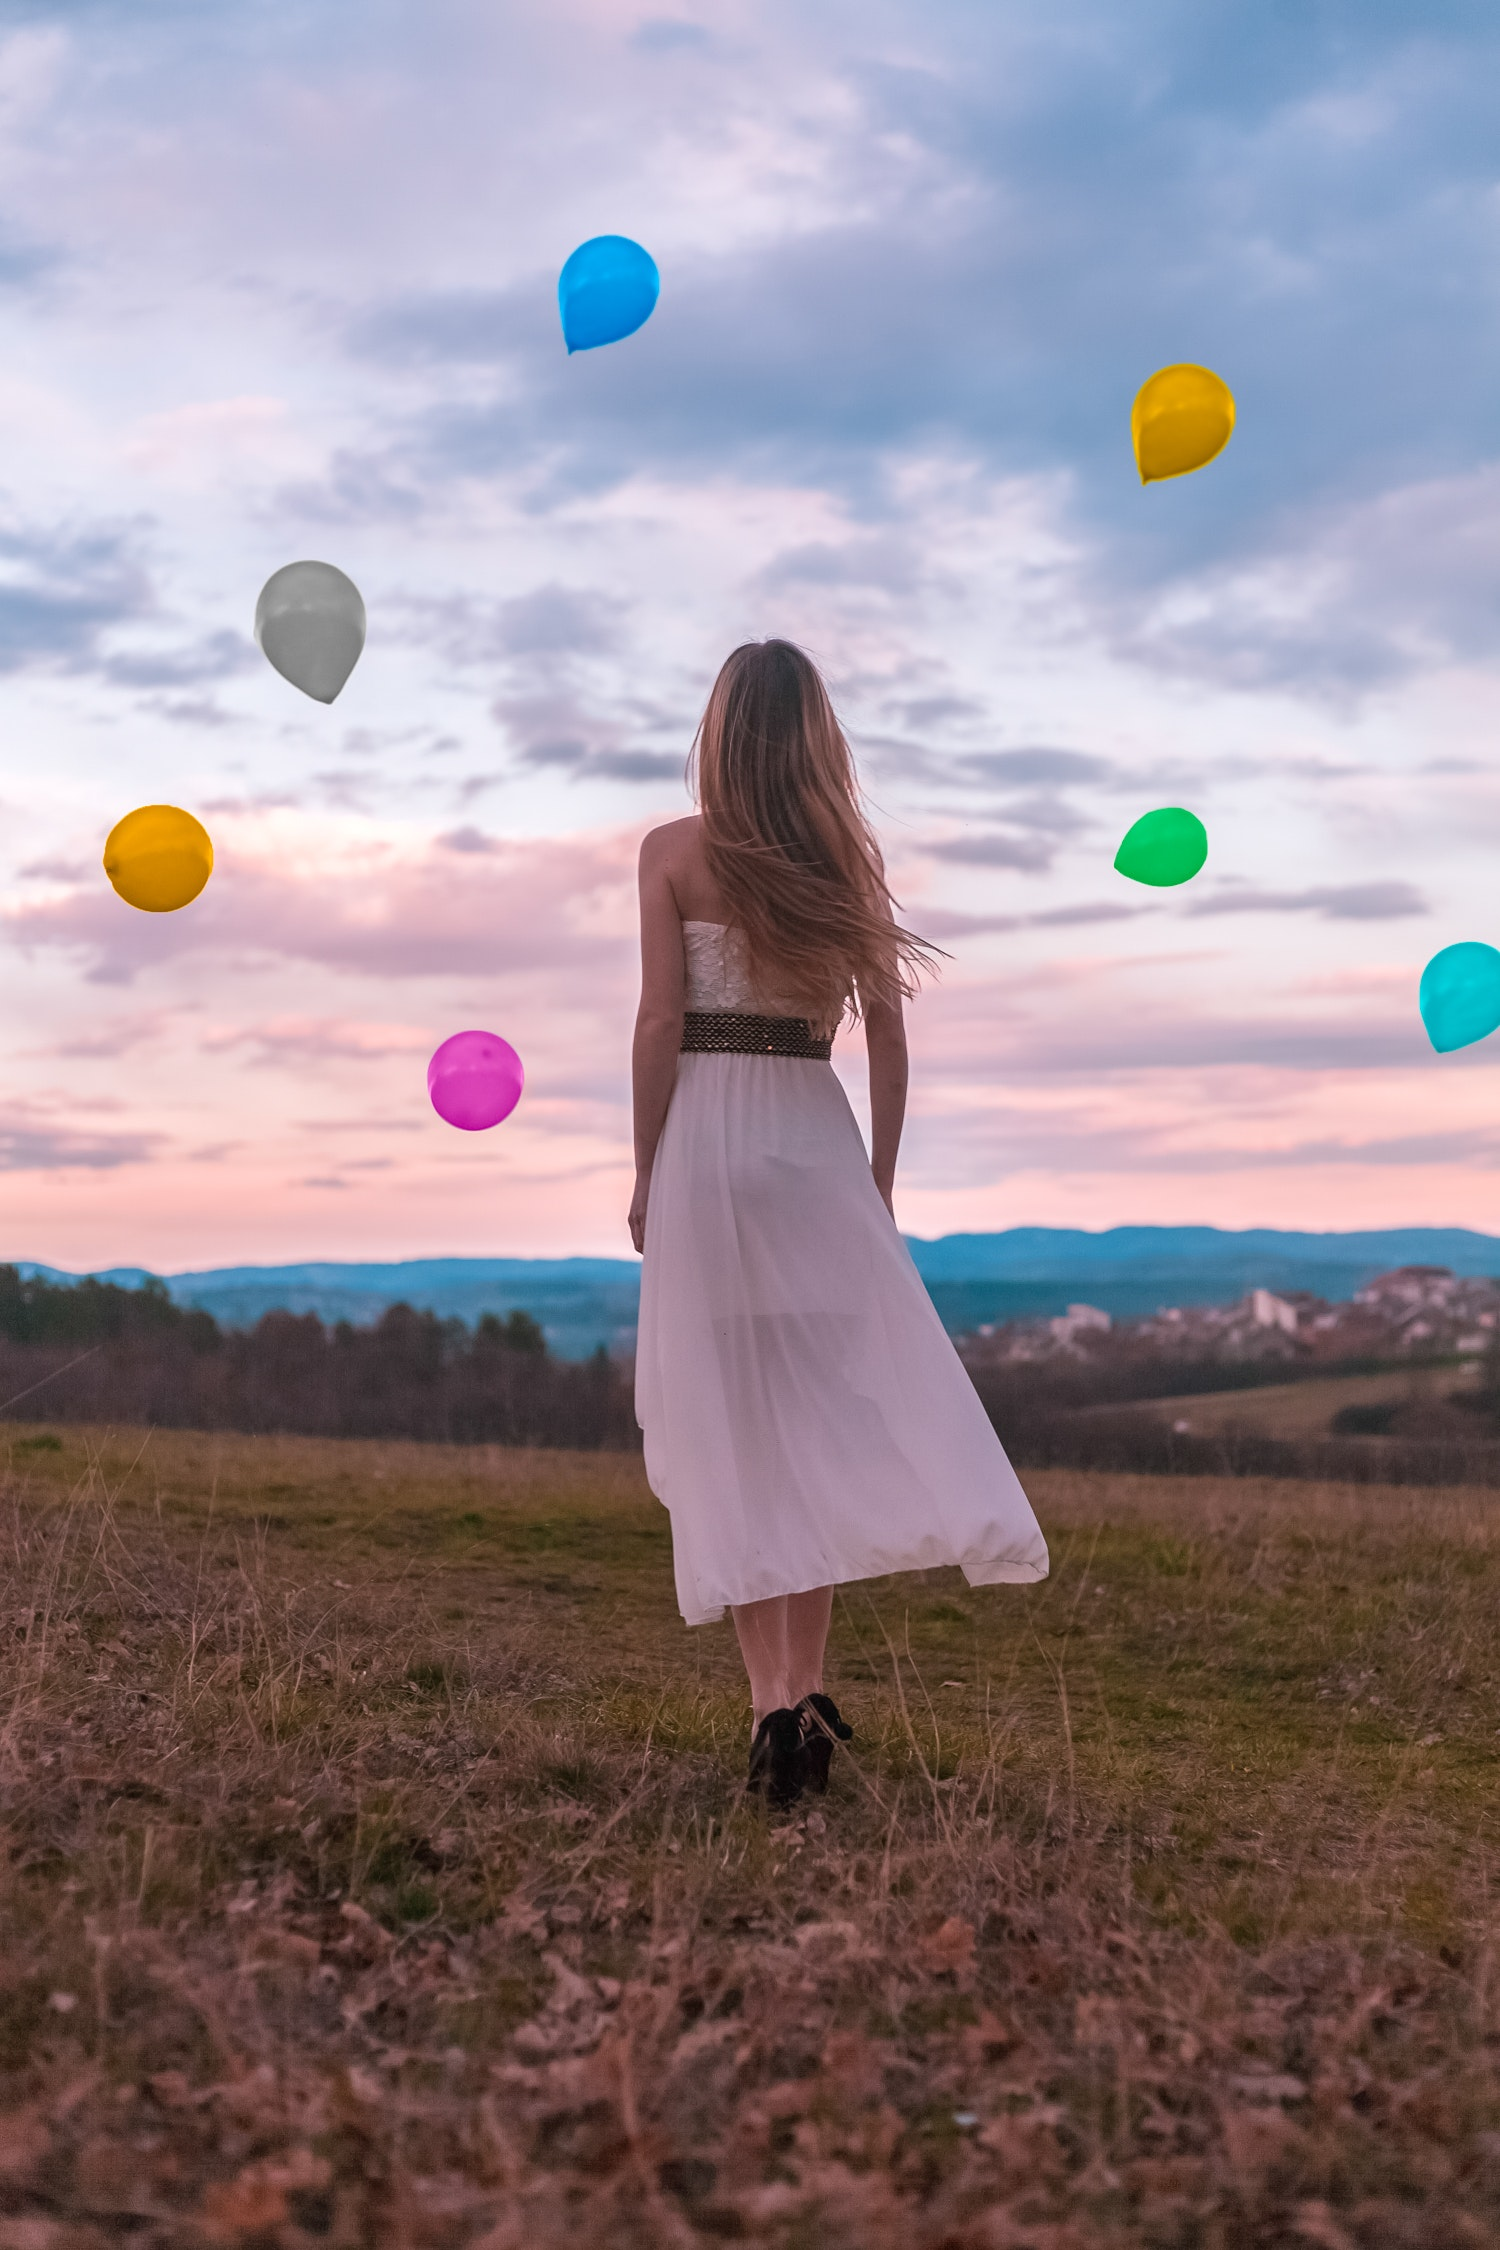 Woman in White Dress Looking at the Balloons, Lady, Joyful, Joy, Leisure, HQ Photo